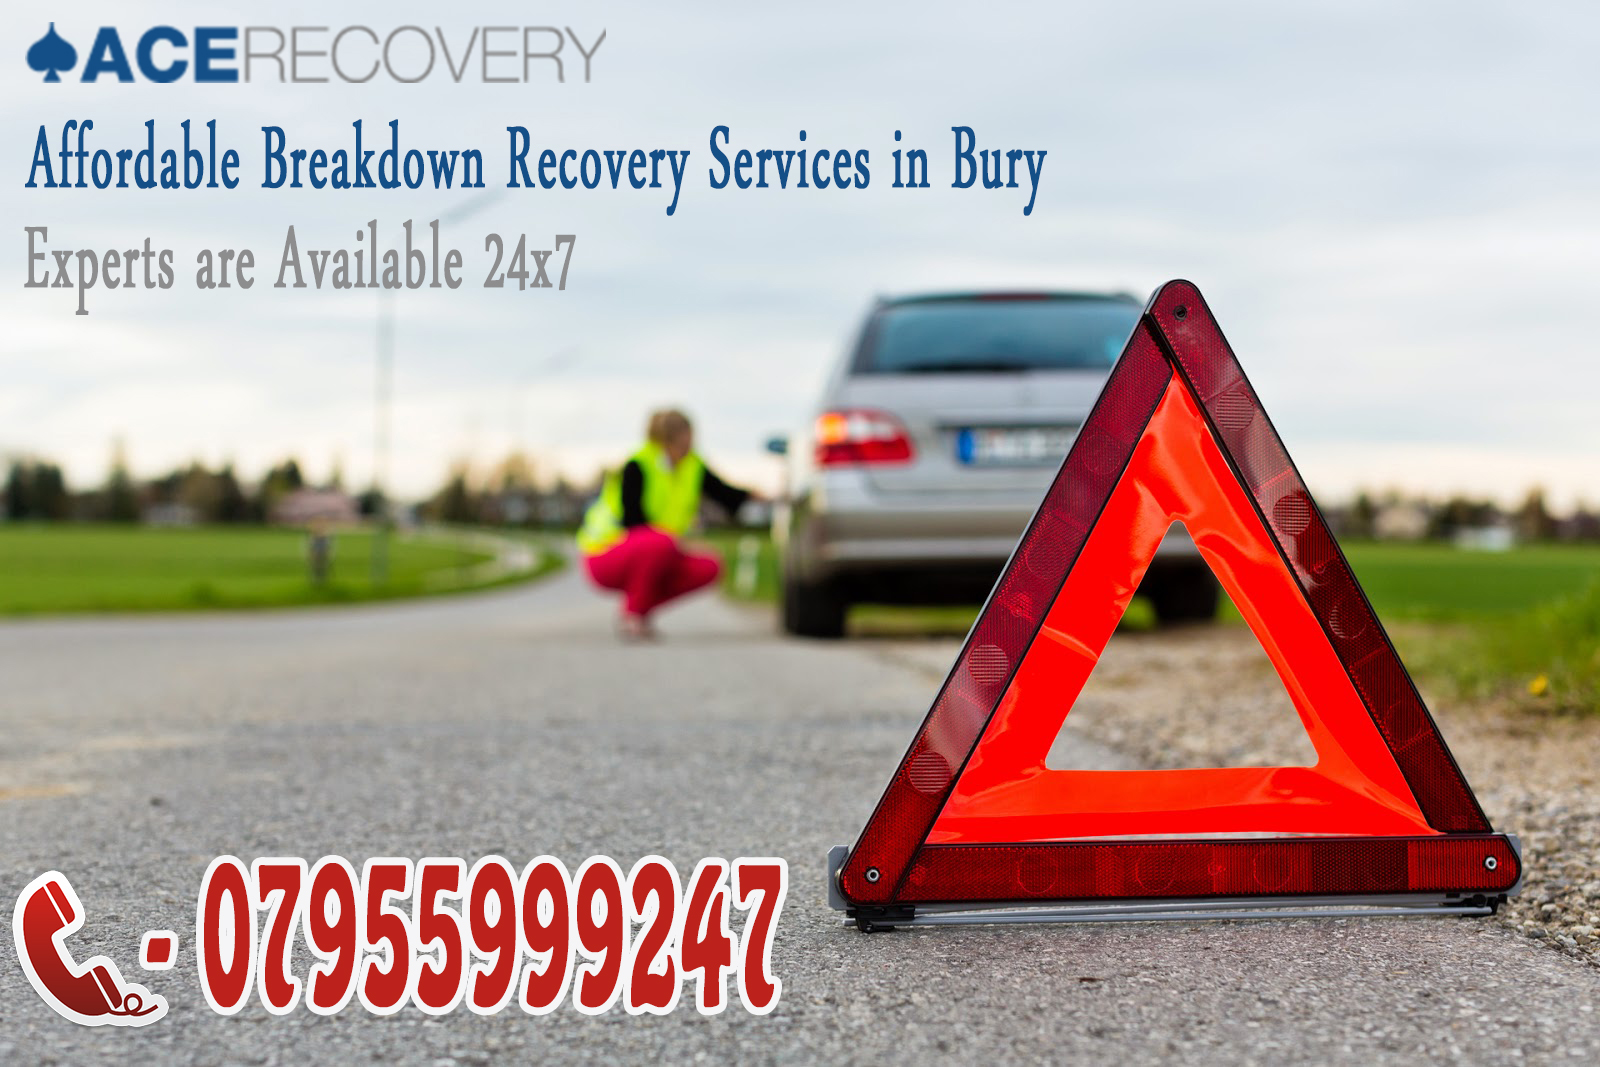 Breakdown Recovery Services in Bury